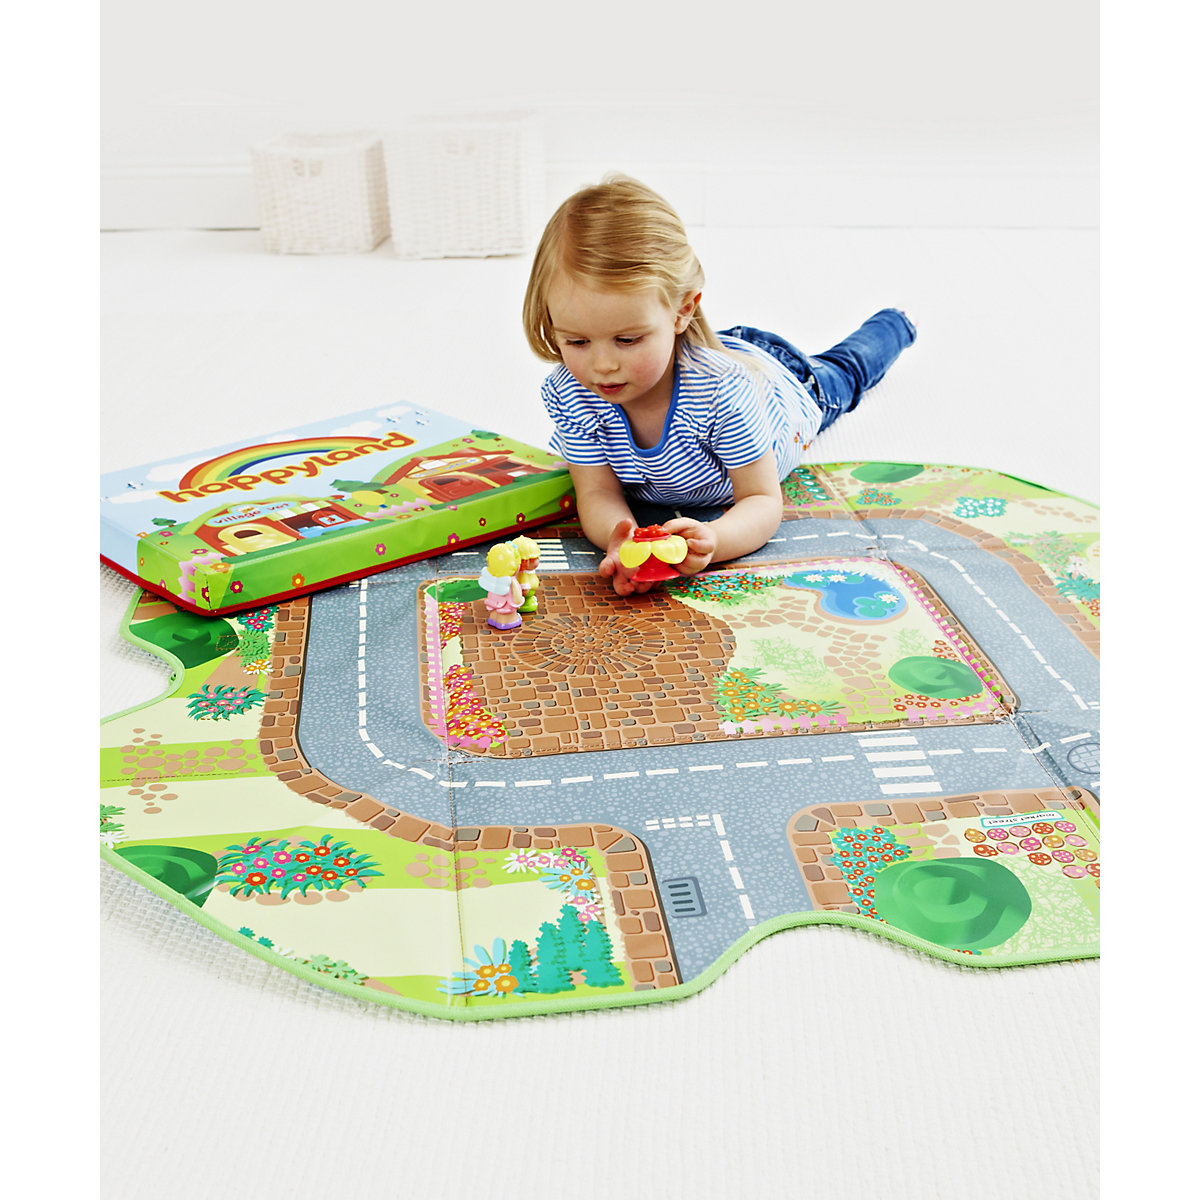 New HappyLand Boys and Girls Store and Play Toy Box Playmat From 18 months - Toddler Gifts